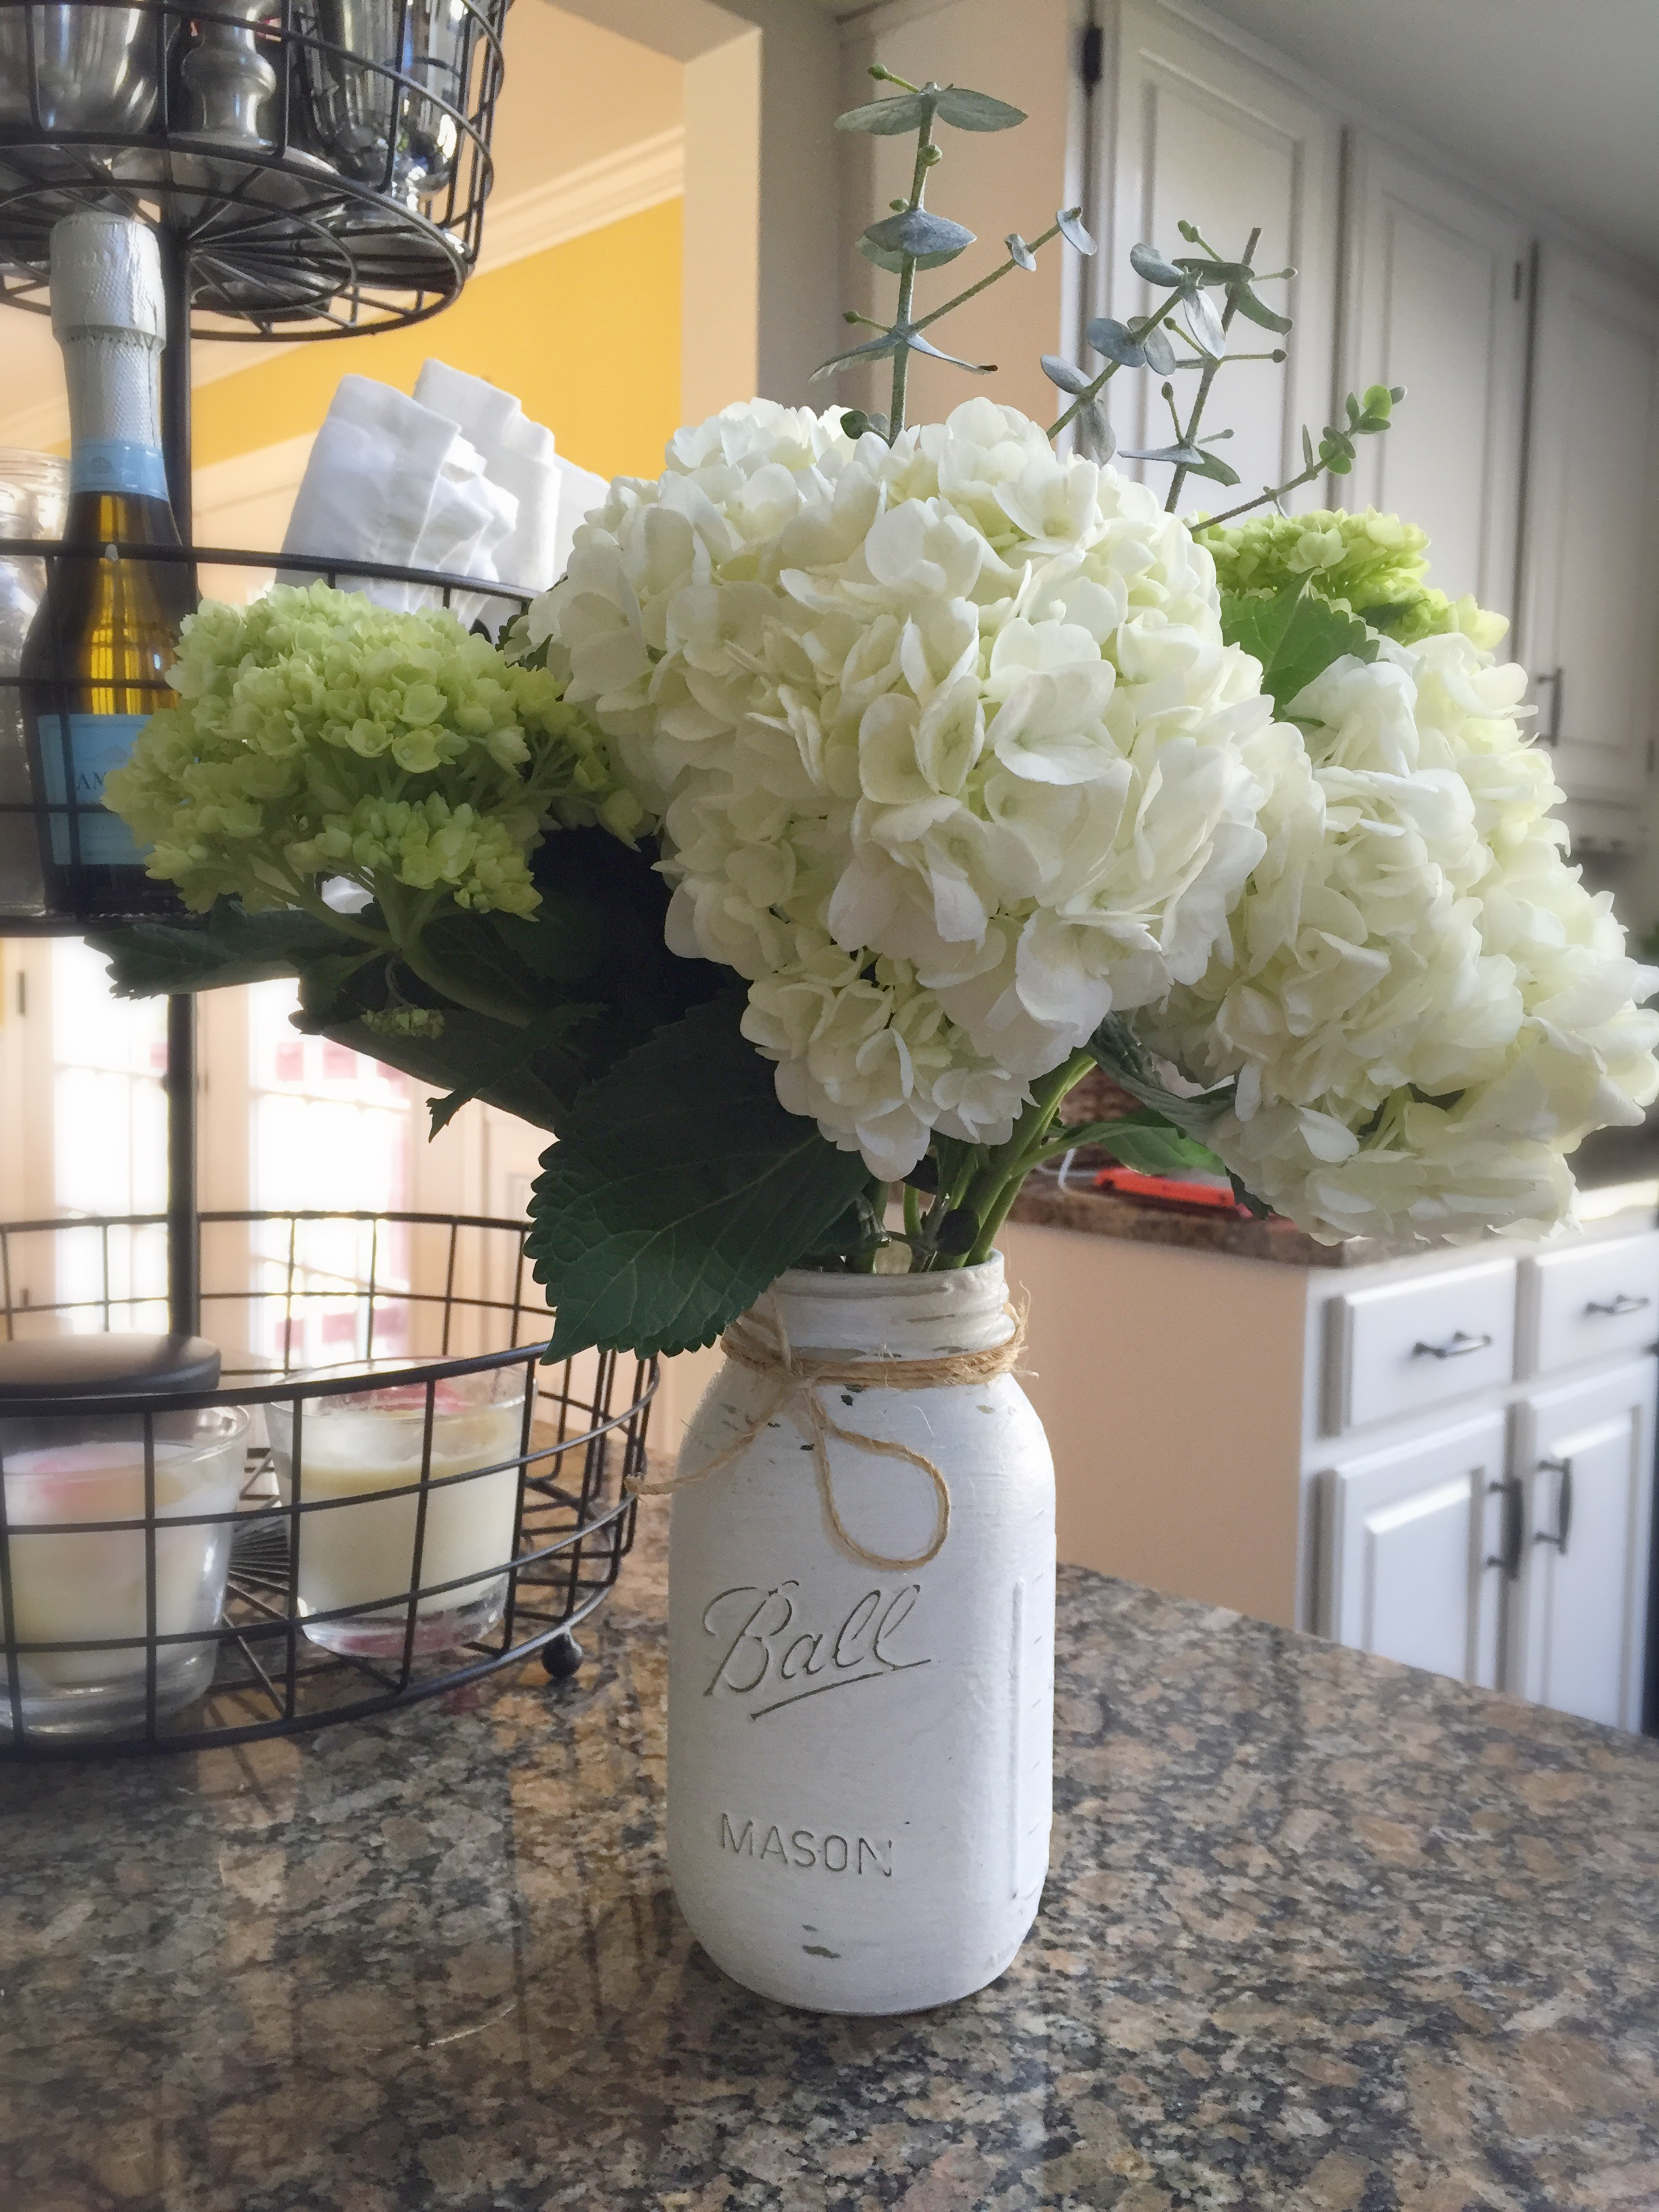 How to paint Mason jars with chalk paint by www.whitecottagehomeandliving.com